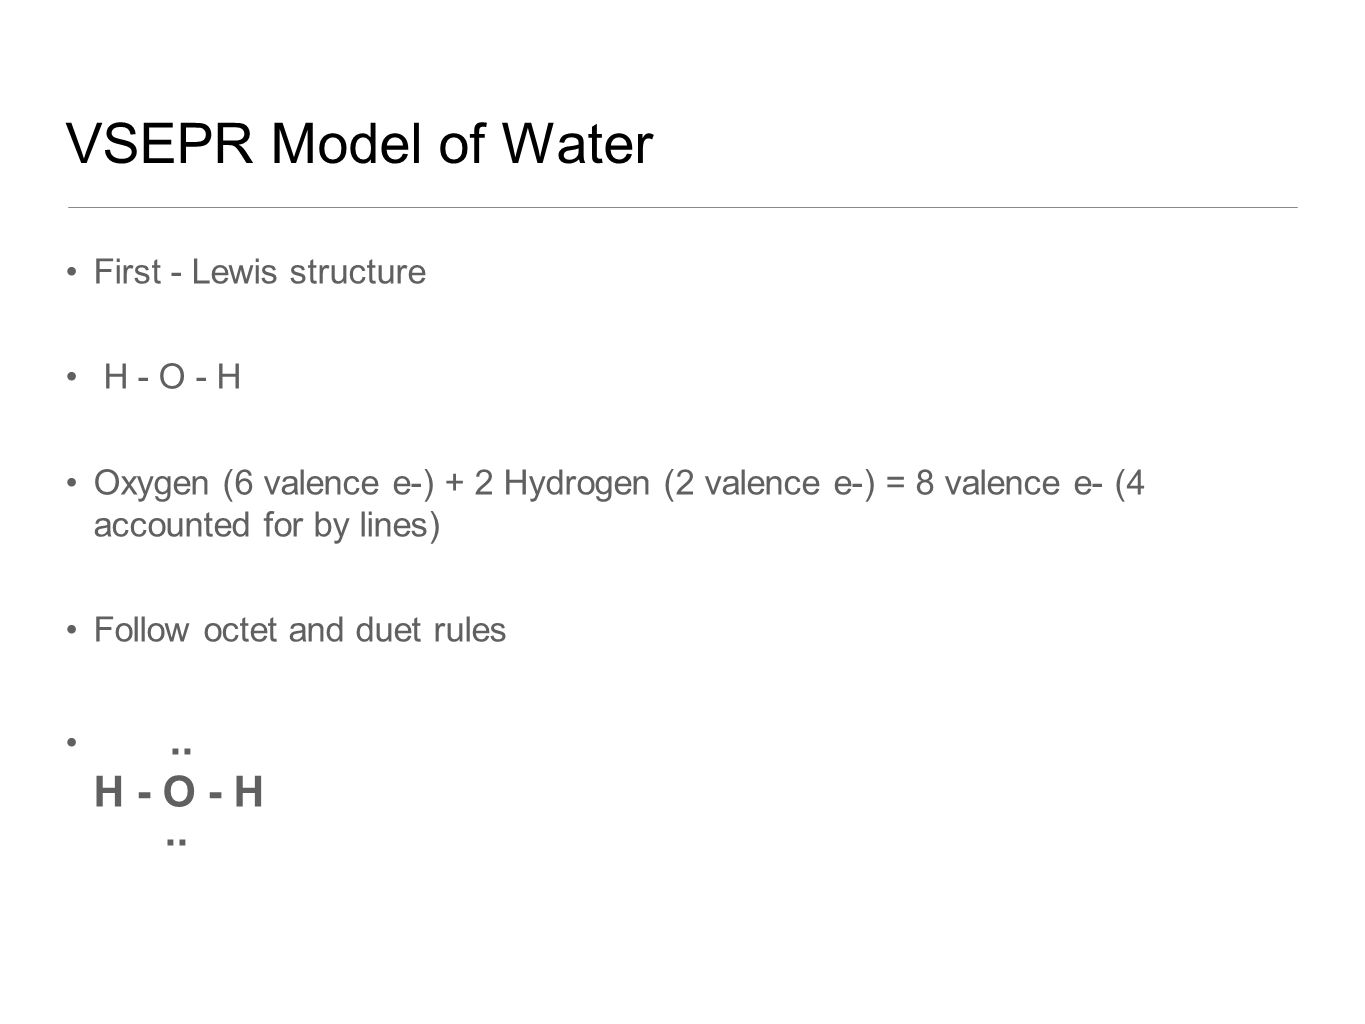 VSEPR Model of Water First - Lewis structure H - O - H Oxygen (6 valence e-) + 2 Hydrogen (2 valence e-) = 8 valence e- (4 accounted for by lines) Follow octet and duet rules..